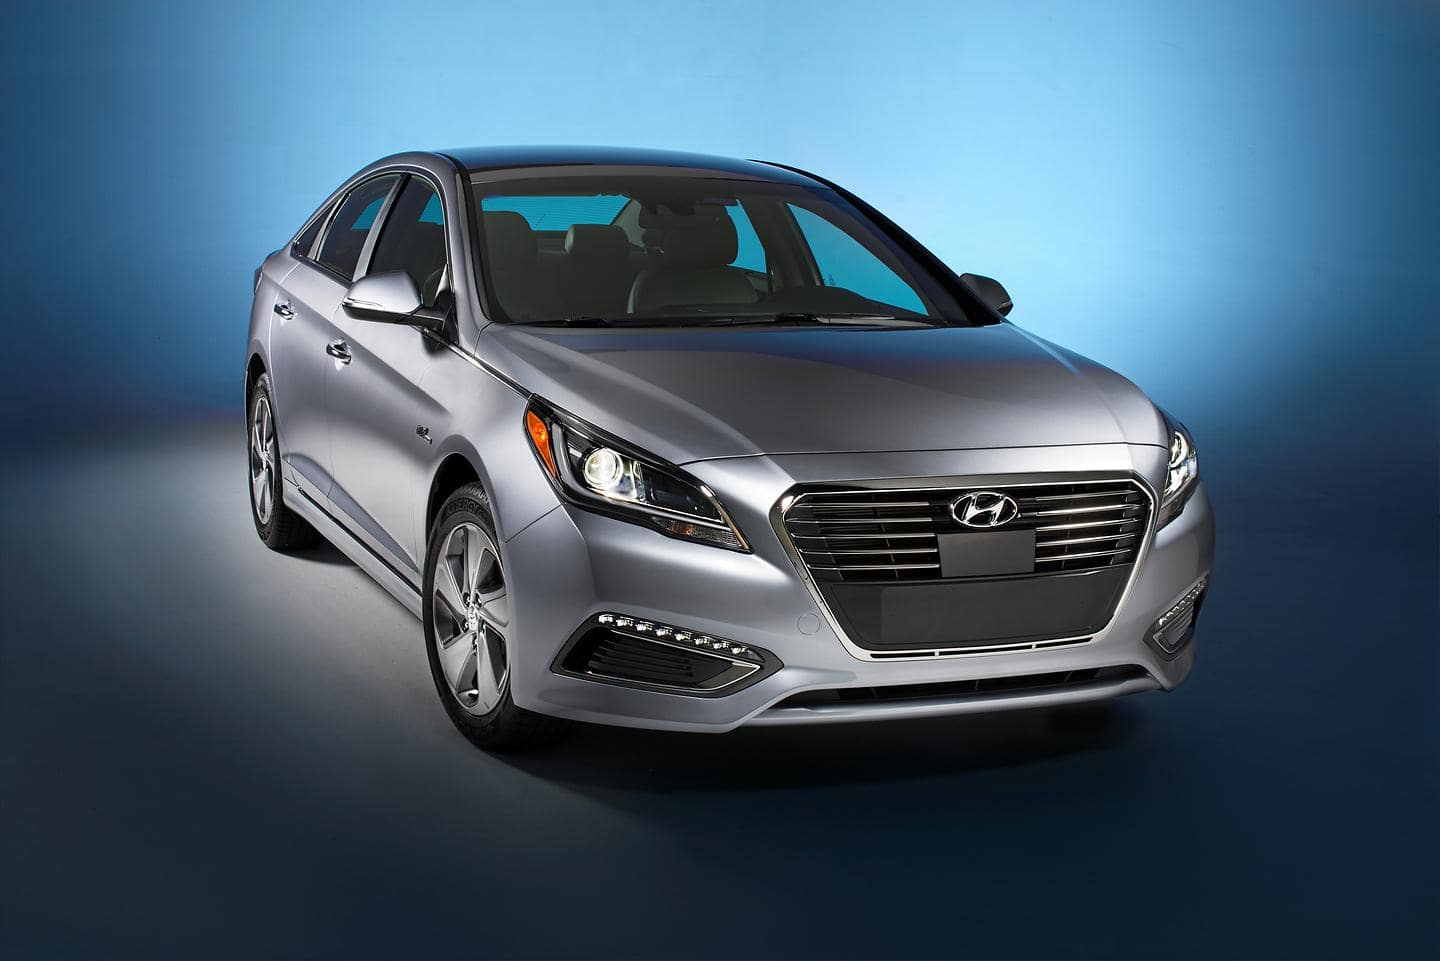 Hyundai Motor's Advanced Powertrain of 2016 Sonata Plug-in Hybrid Named to Ward's 10 Best Engines List